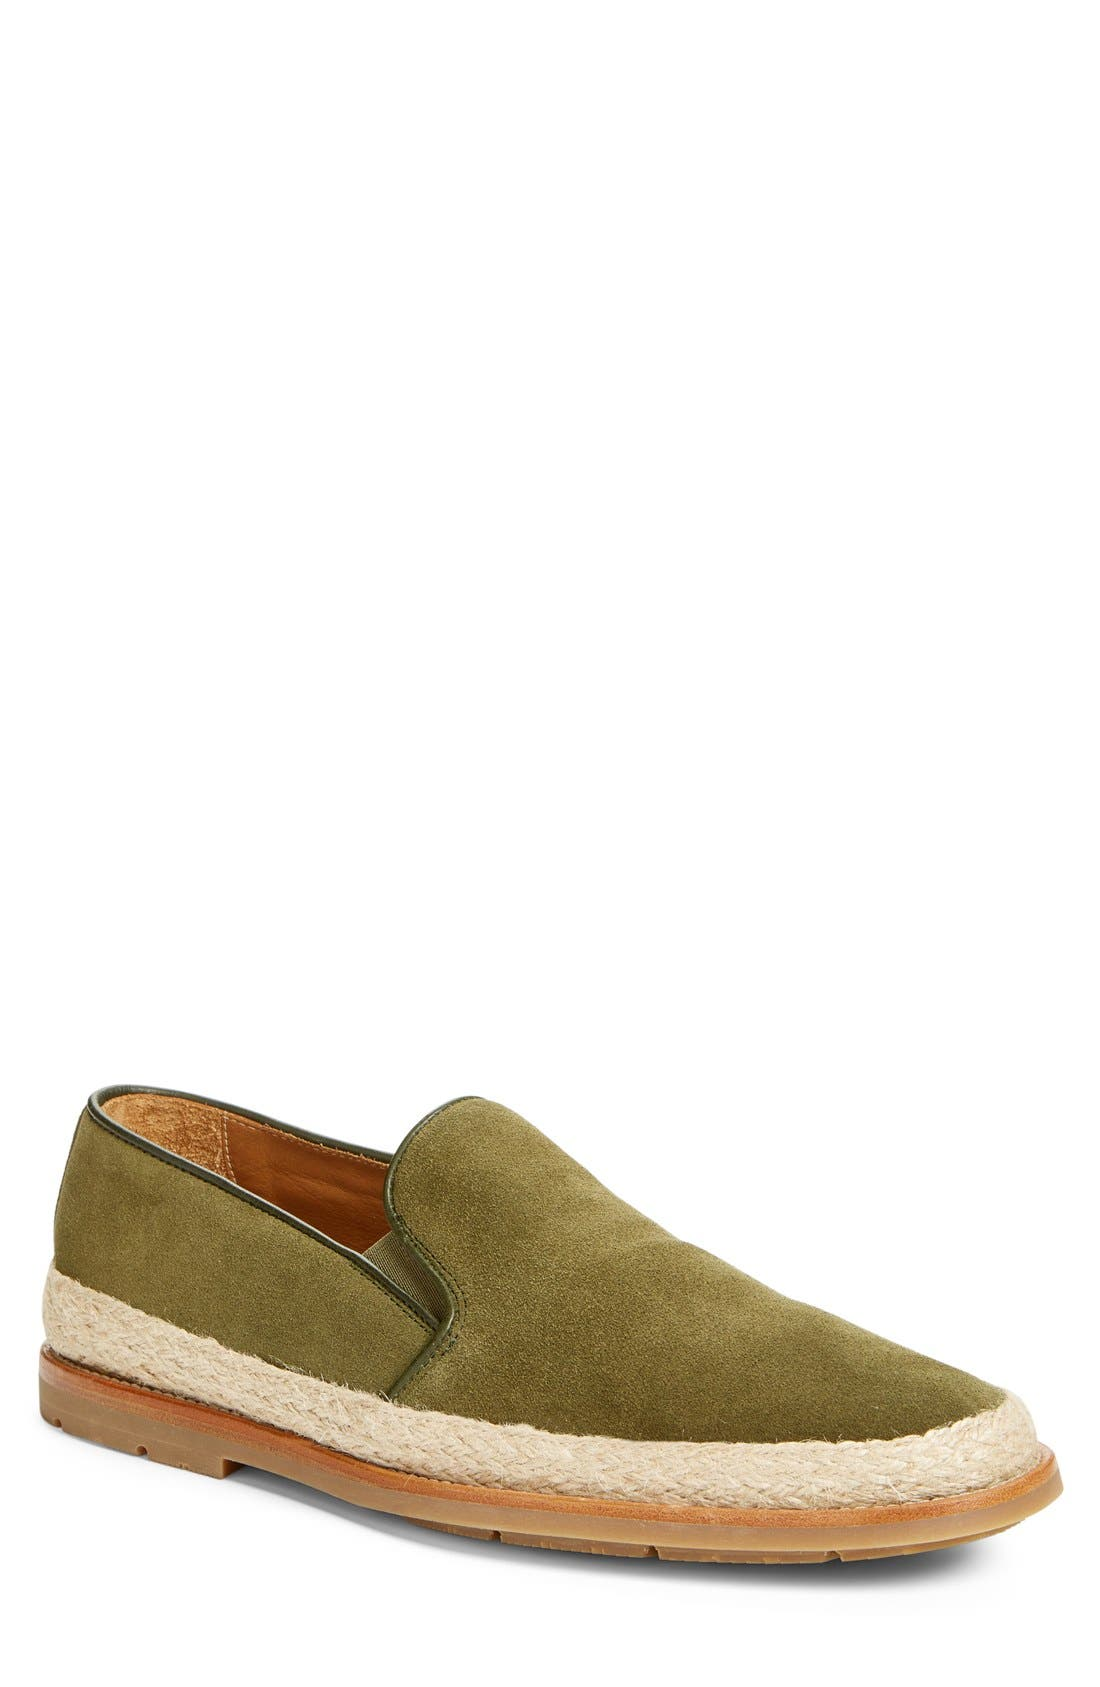 'Zayn' Weatherproof Espadrille,                         Main,                         color, Green Suede